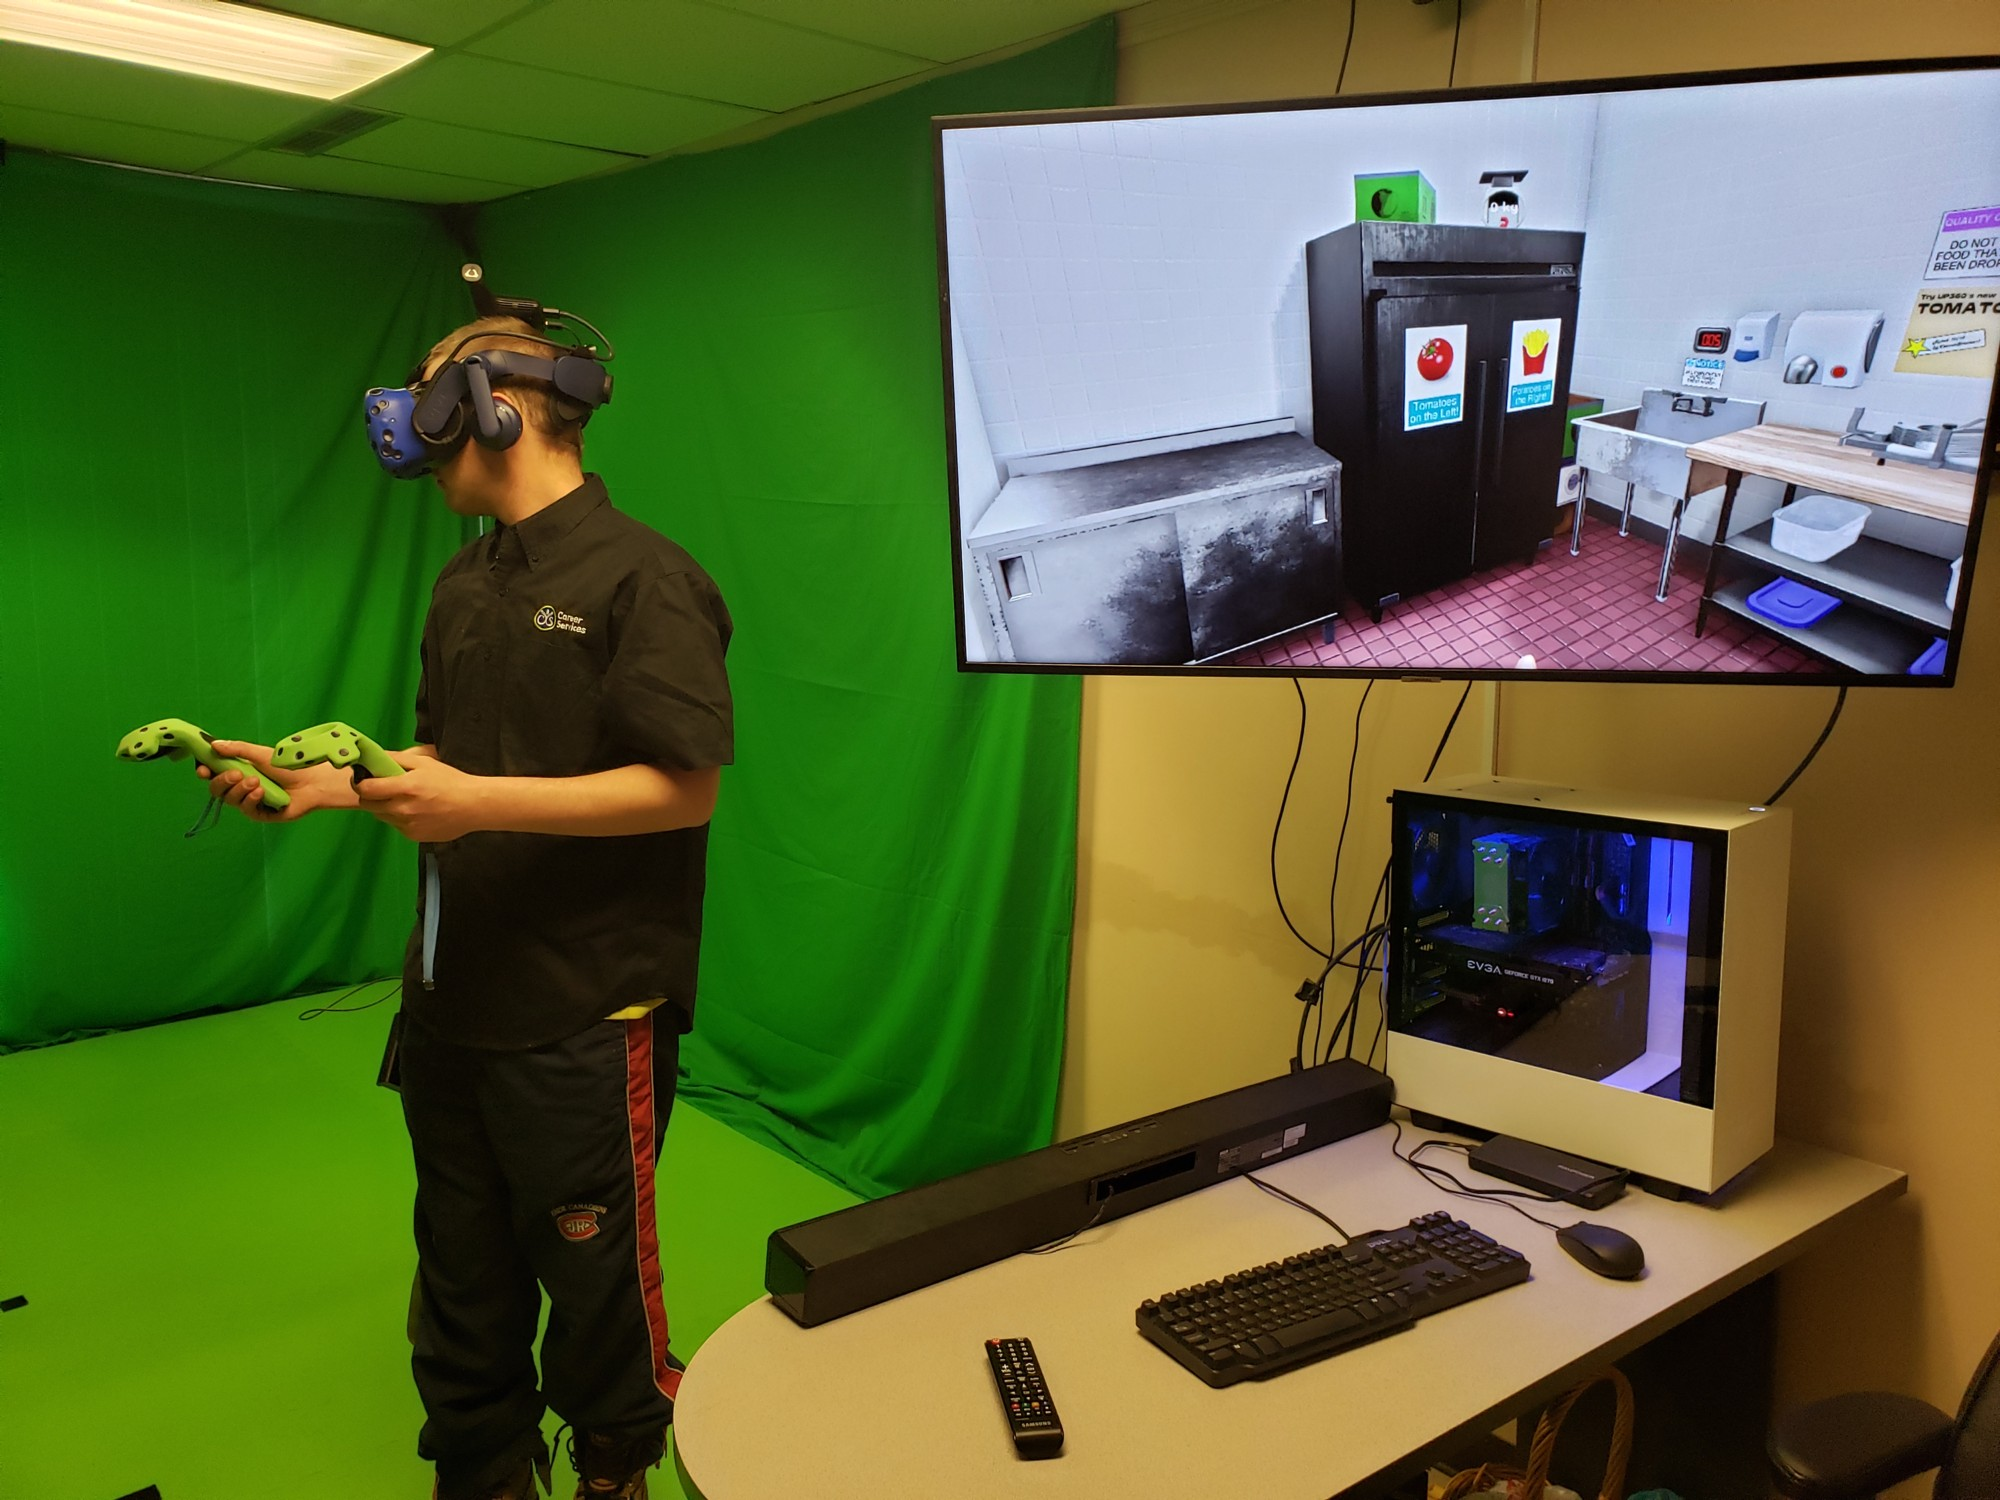 Zack on the VR (Virtual Reality) training system at Career Services in Brockville